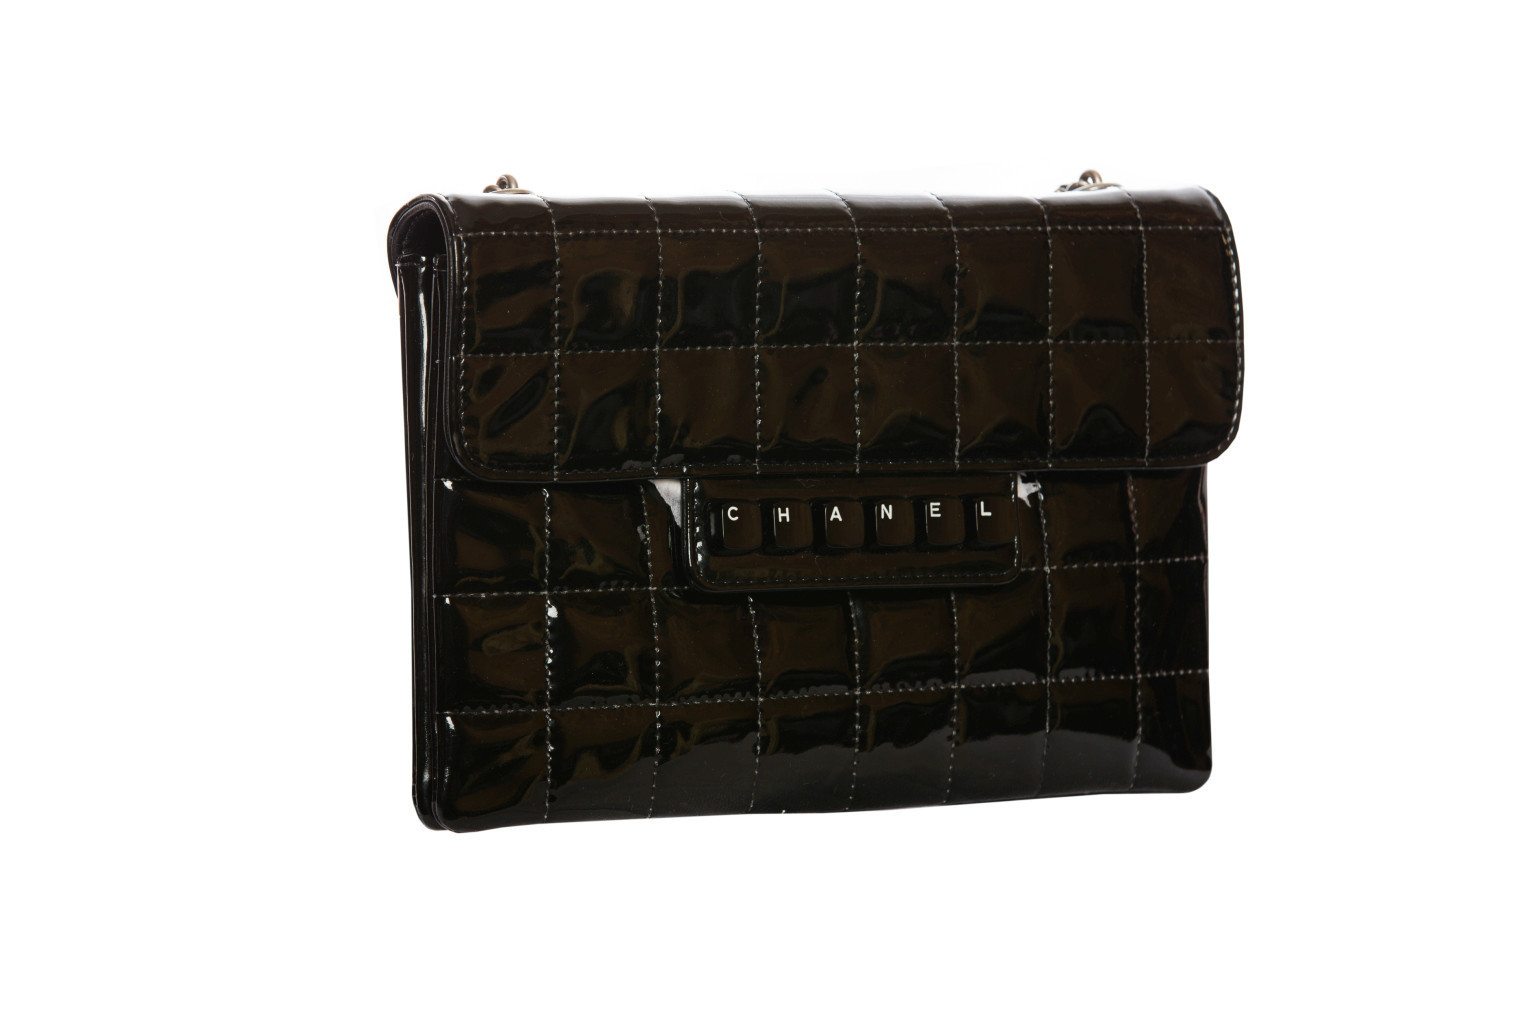 Chanel black quilted patent leather clutch bag